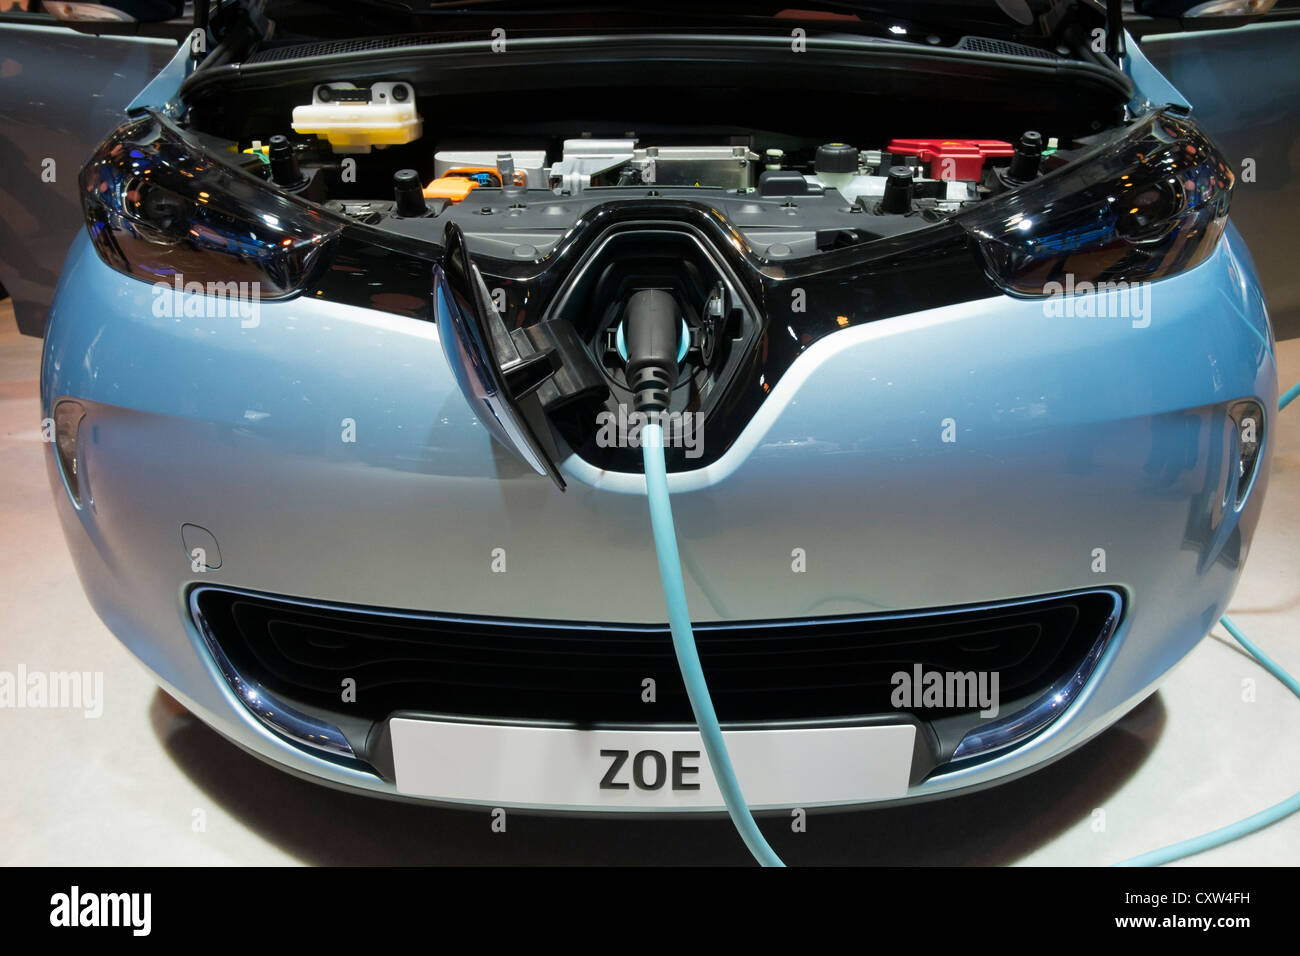 detail of renault zoe electric car with plug in charging. Black Bedroom Furniture Sets. Home Design Ideas